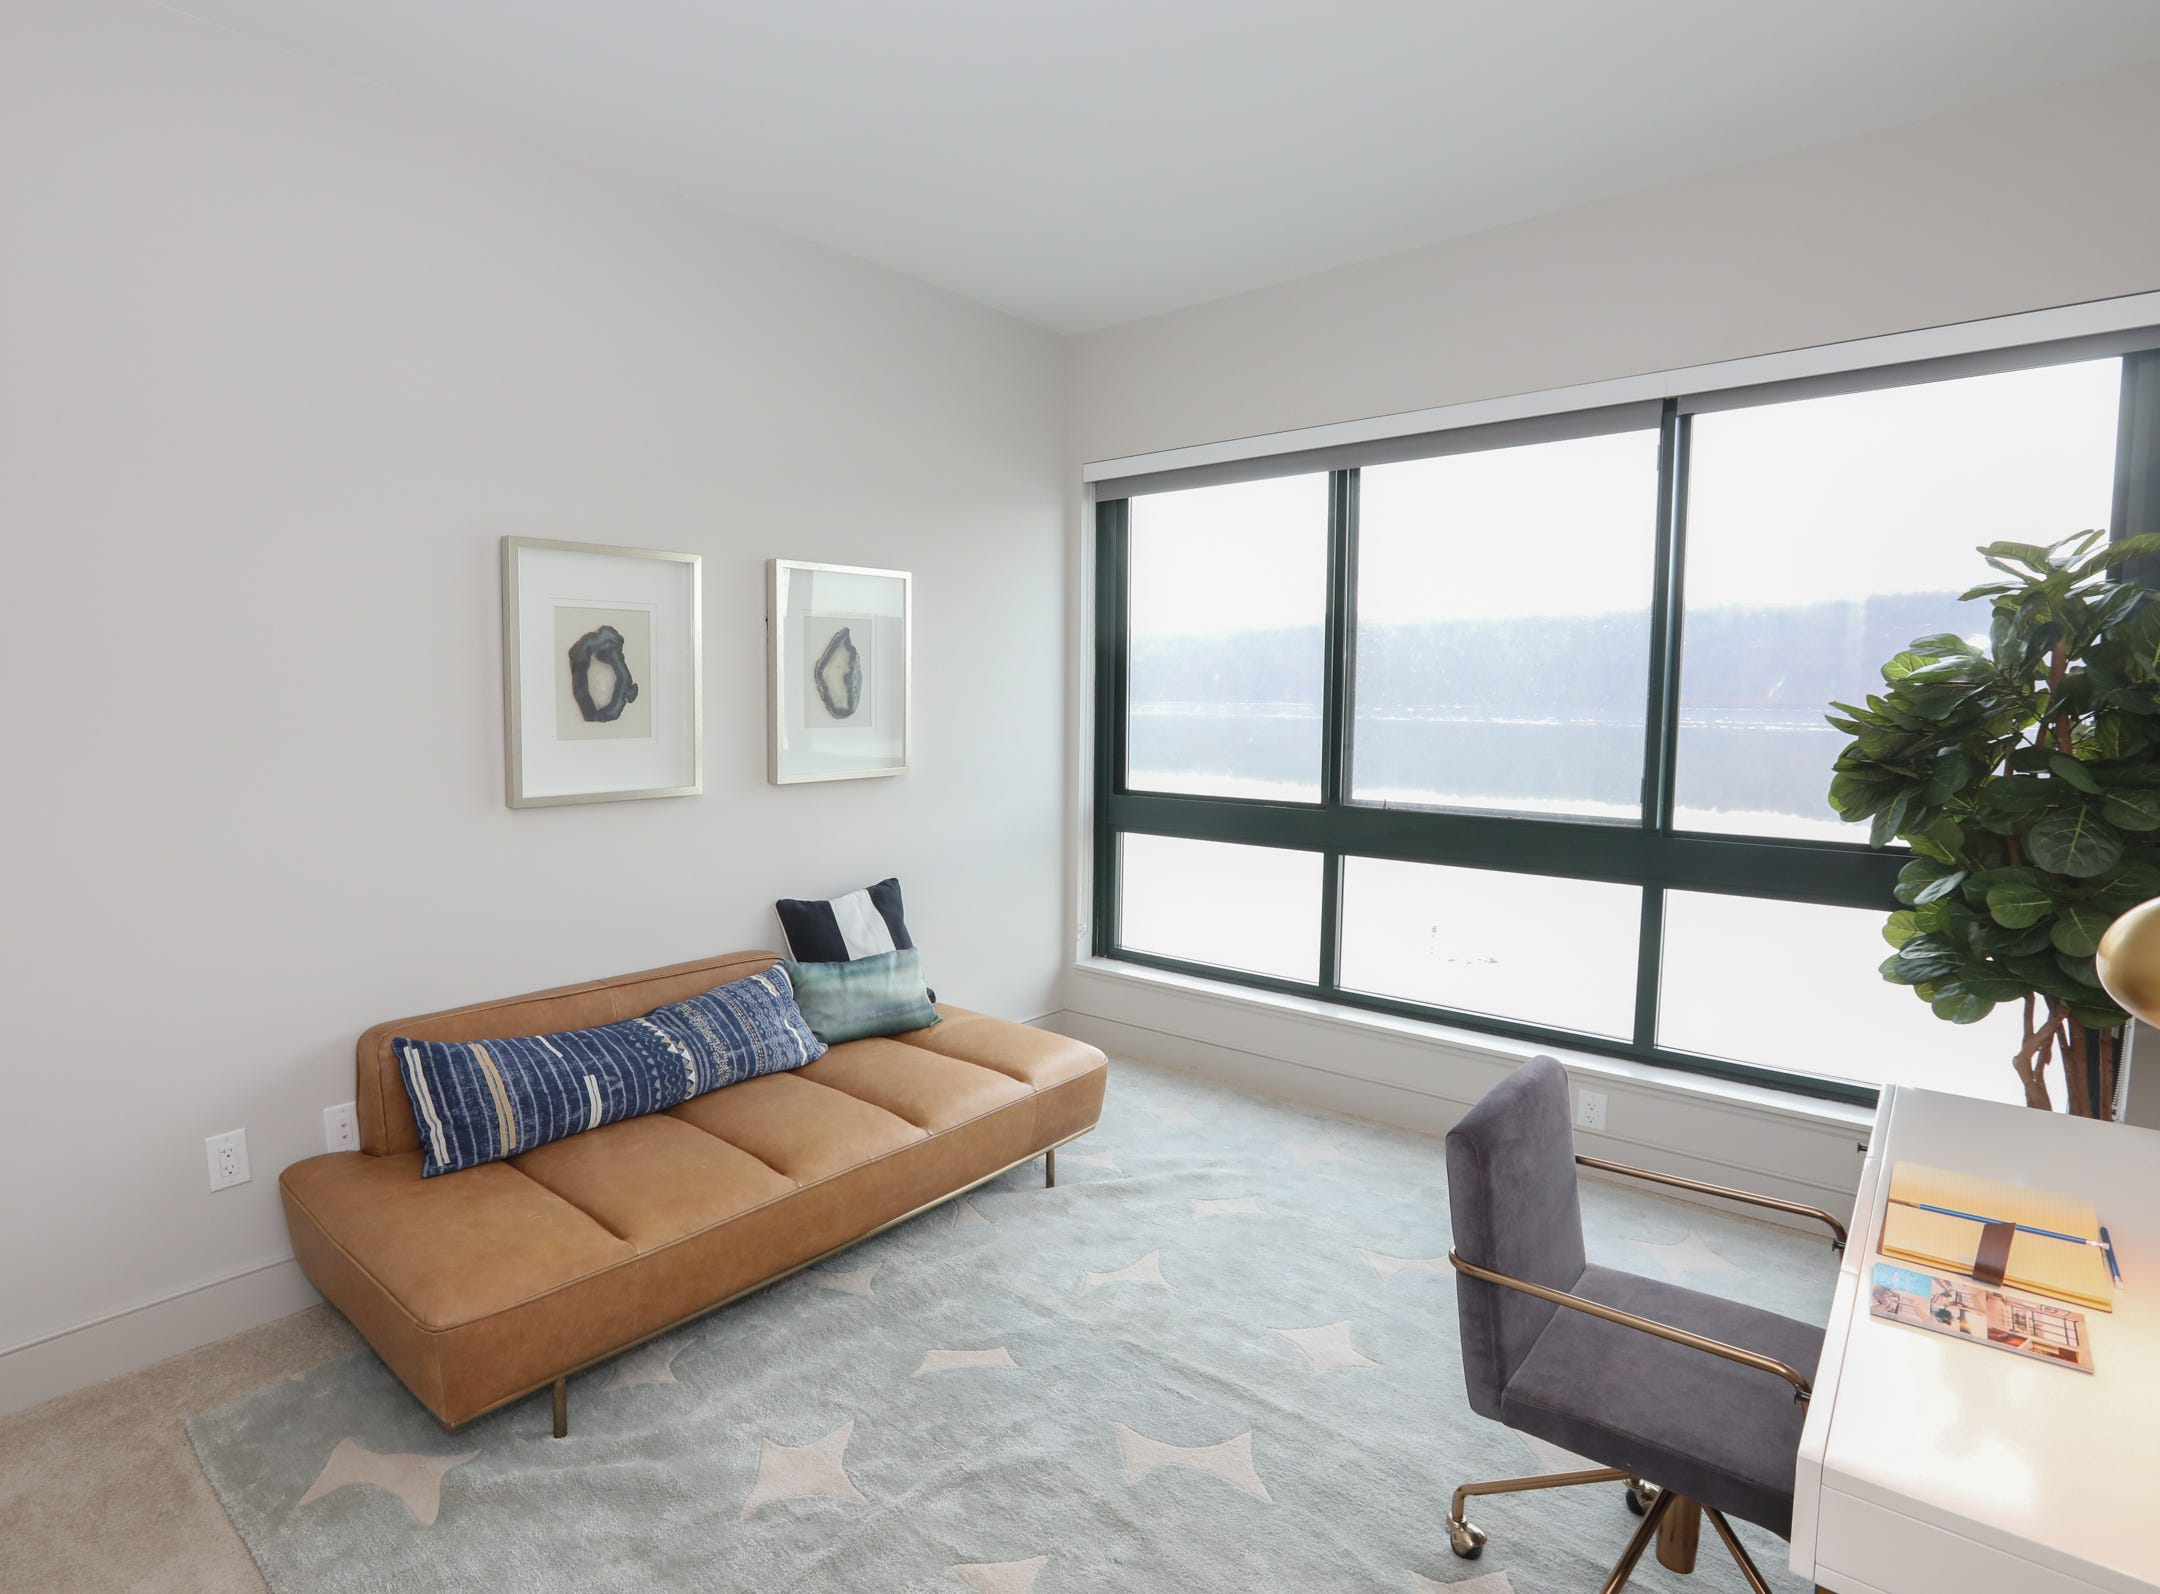 The second badroom of a two bedroom apartment at The River Club at Hudson Park in Yonkers on Friday, February 15, 2019.